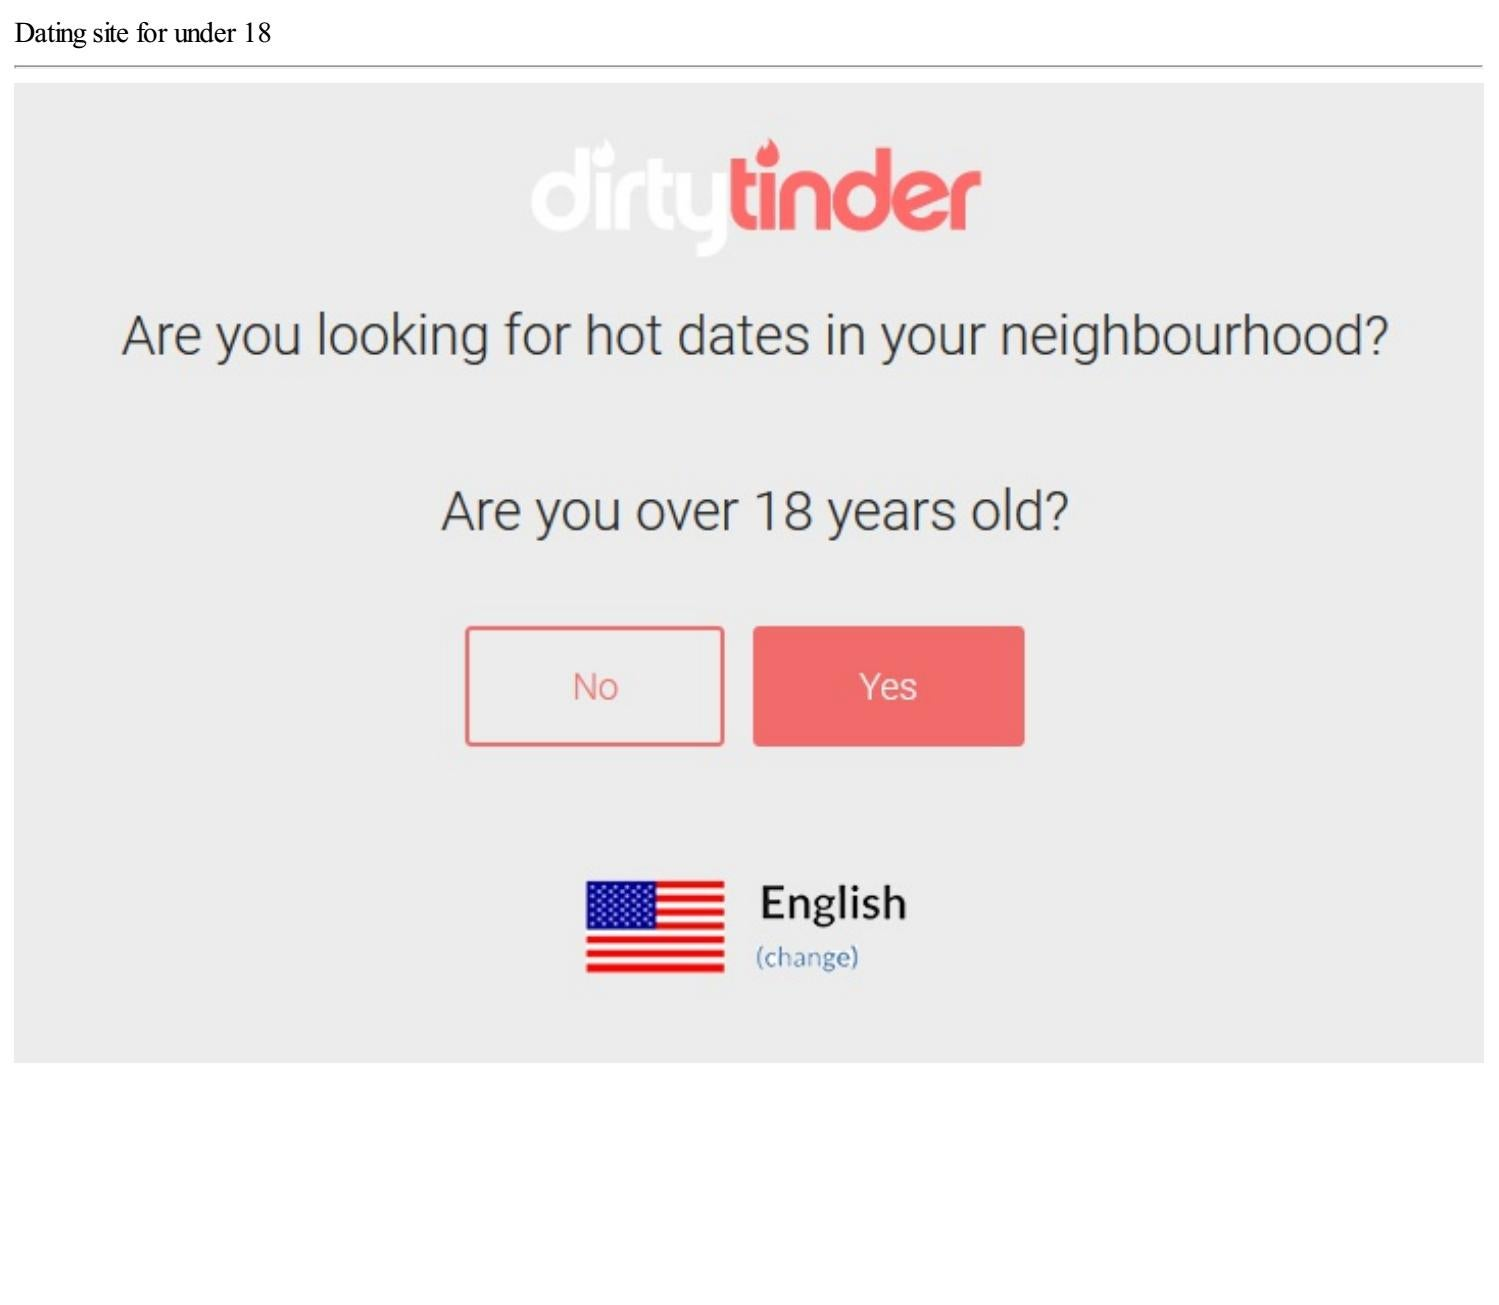 dating site for under 18s